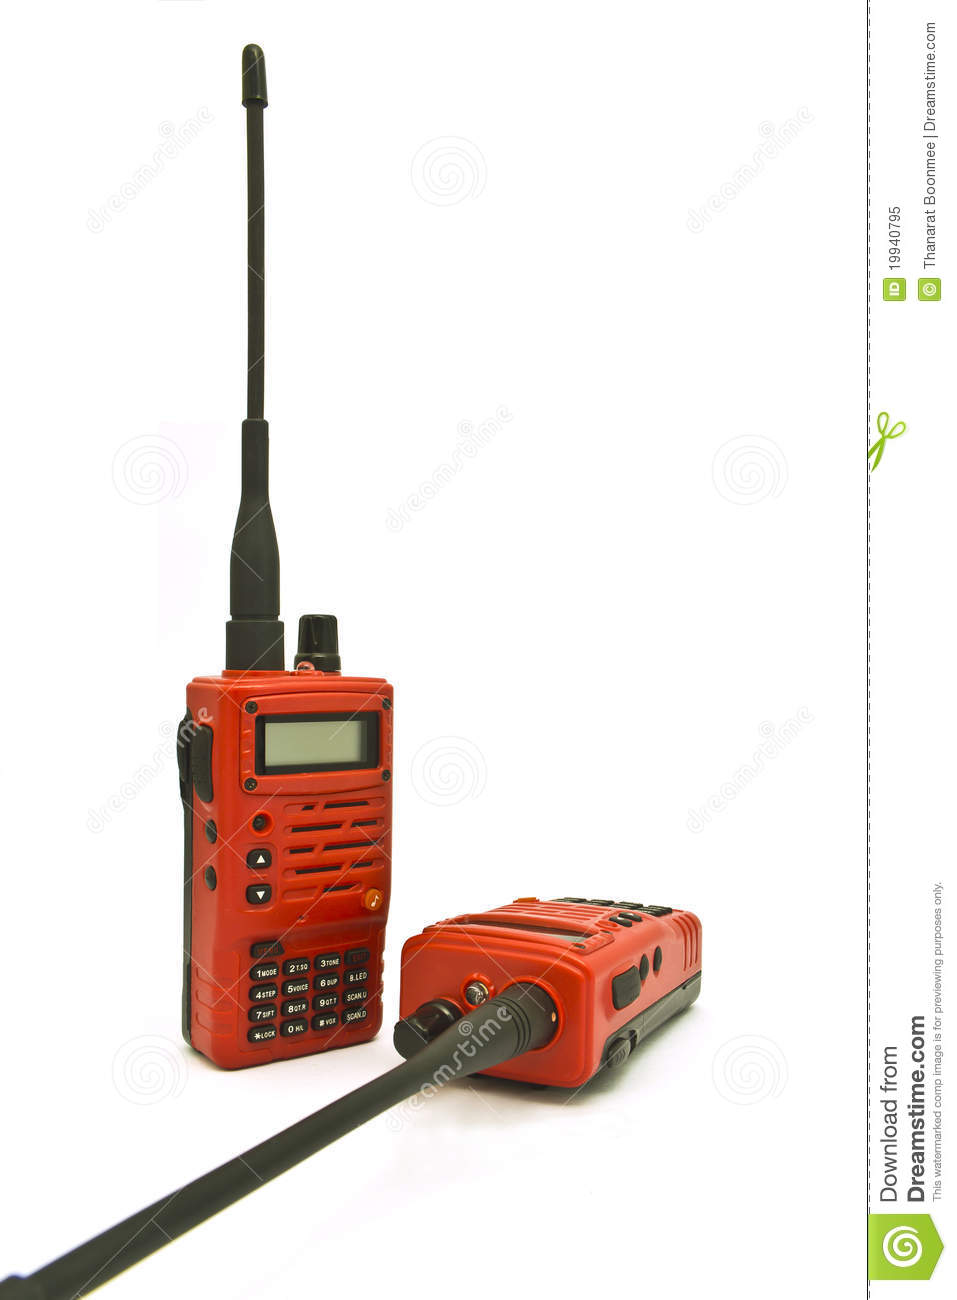 Cb radio communication